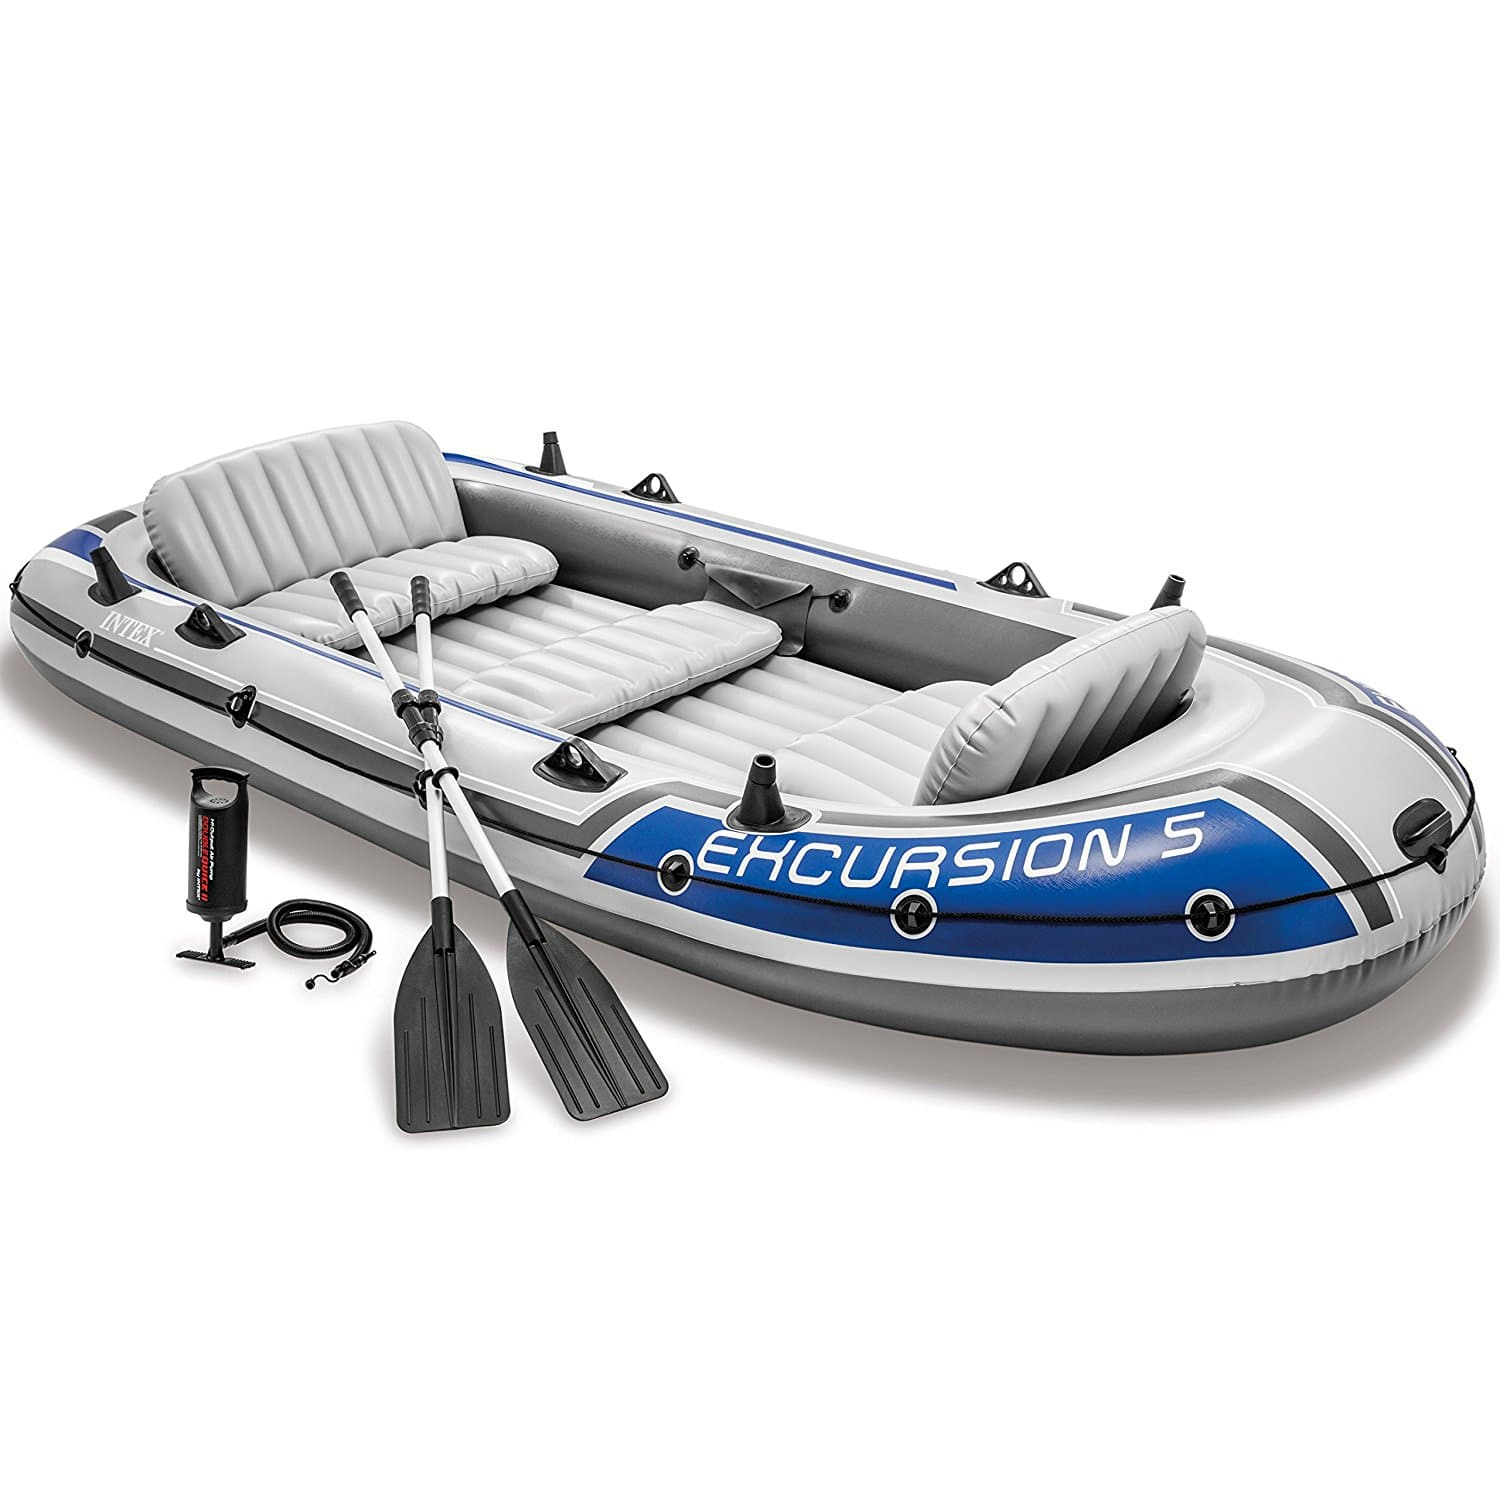 Intex Excursion 5-Person Inflatable Boat Set, $88 (30% discount), very limited time offer!